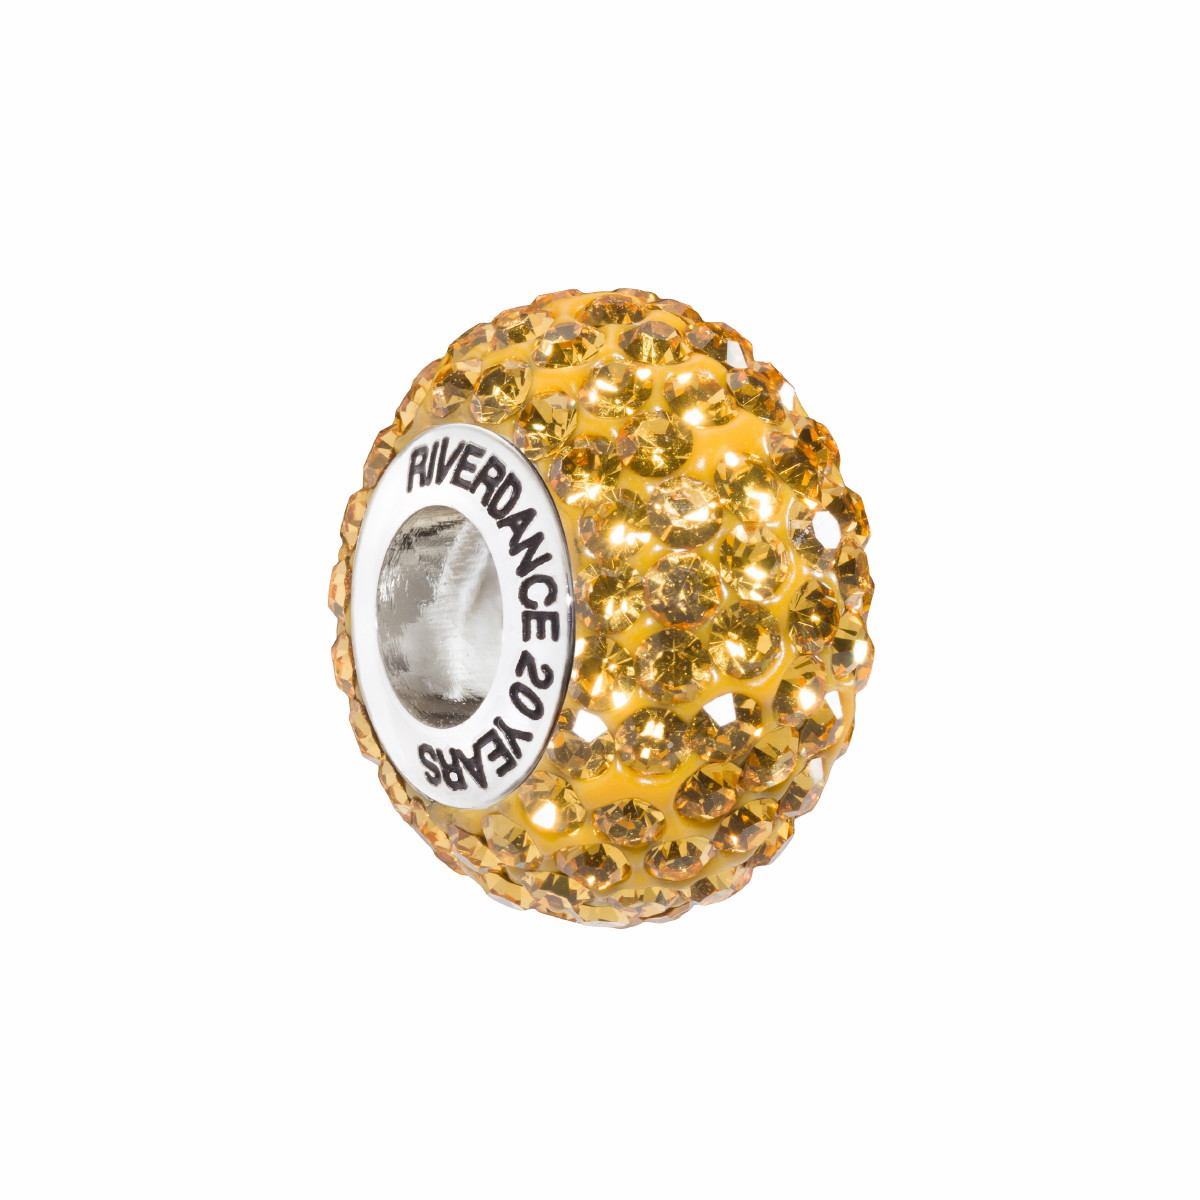 Official Riverdance20 Crystal Encrusted Bead - Yellow